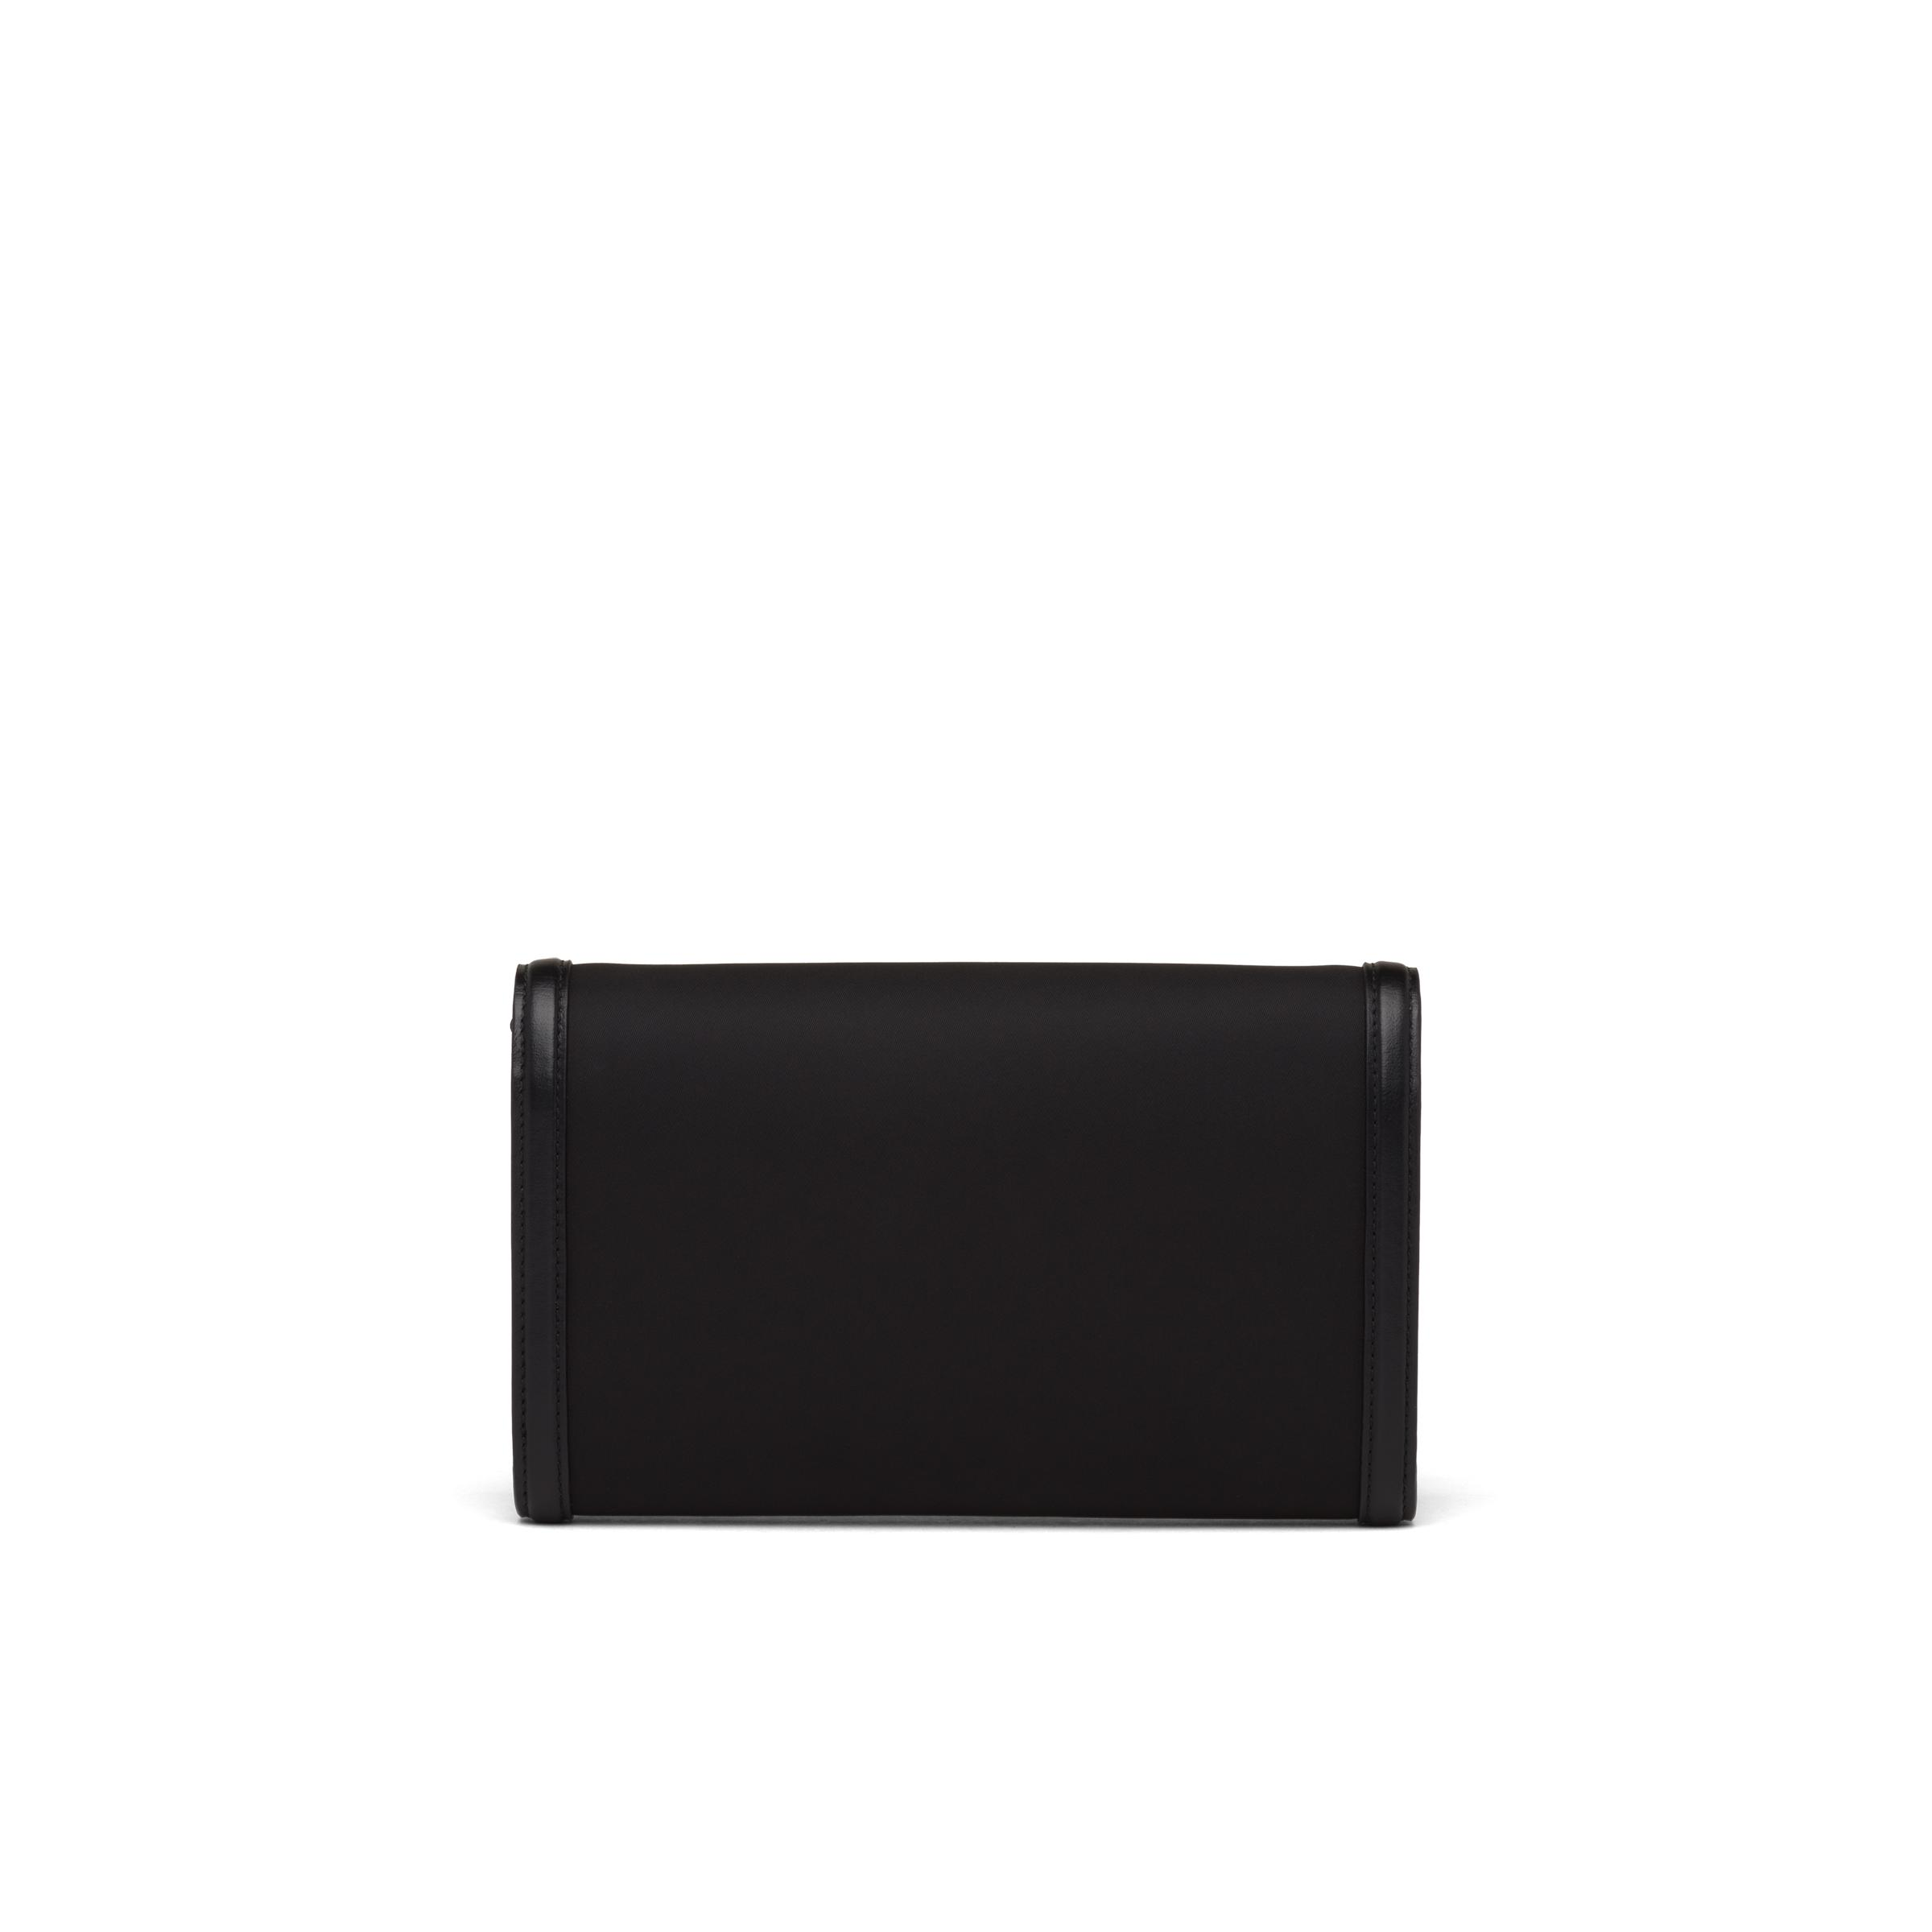 Nylon And Leather Wallet With Shoulder Strap Women Black 3